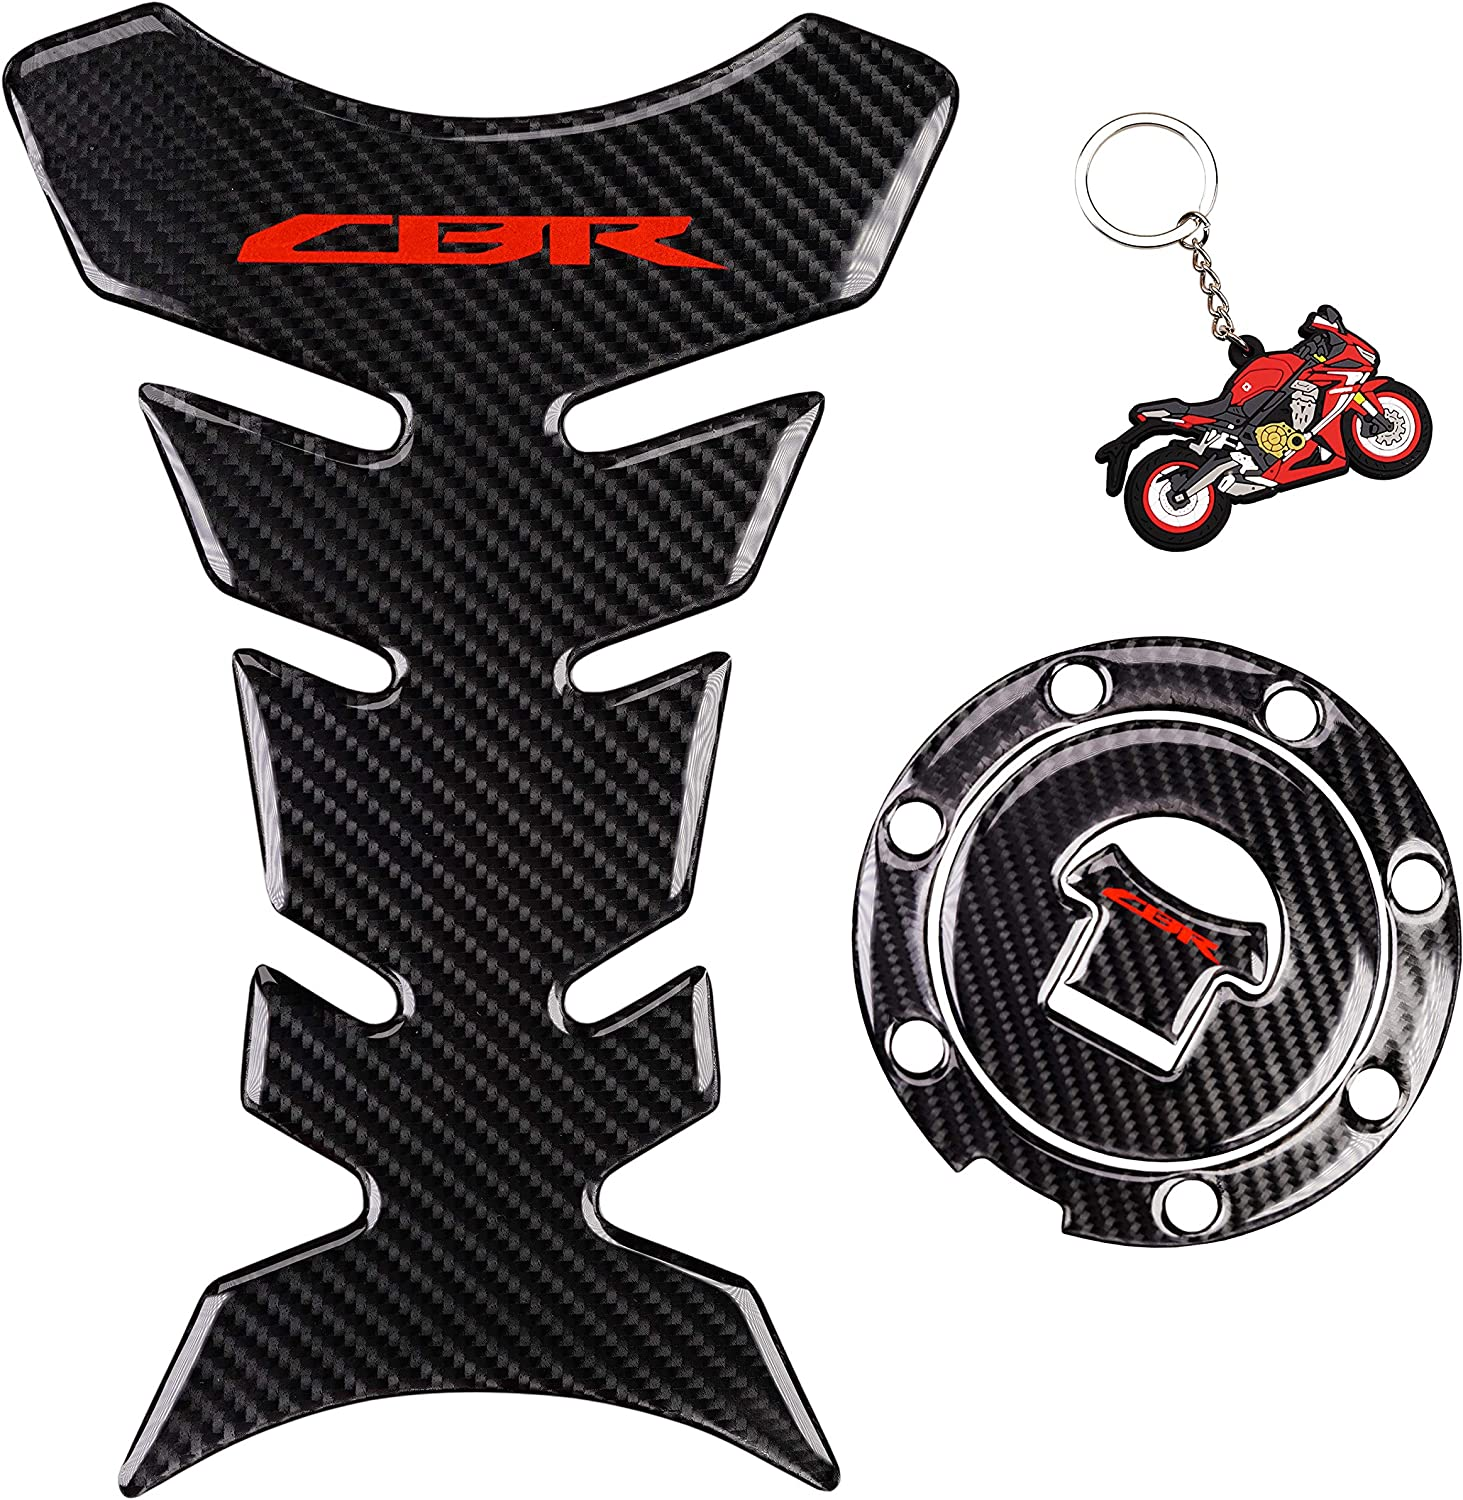 REVSOSTAR Real Carbon Look, Fuel Gas Tank Cap, Protector Pad, Tank Pad Decal Stickers, Tank Protector with Keychain for CBR600RR 2003-2015 CBR1000RR 2004-2015, 3PCS Per Set (RED)